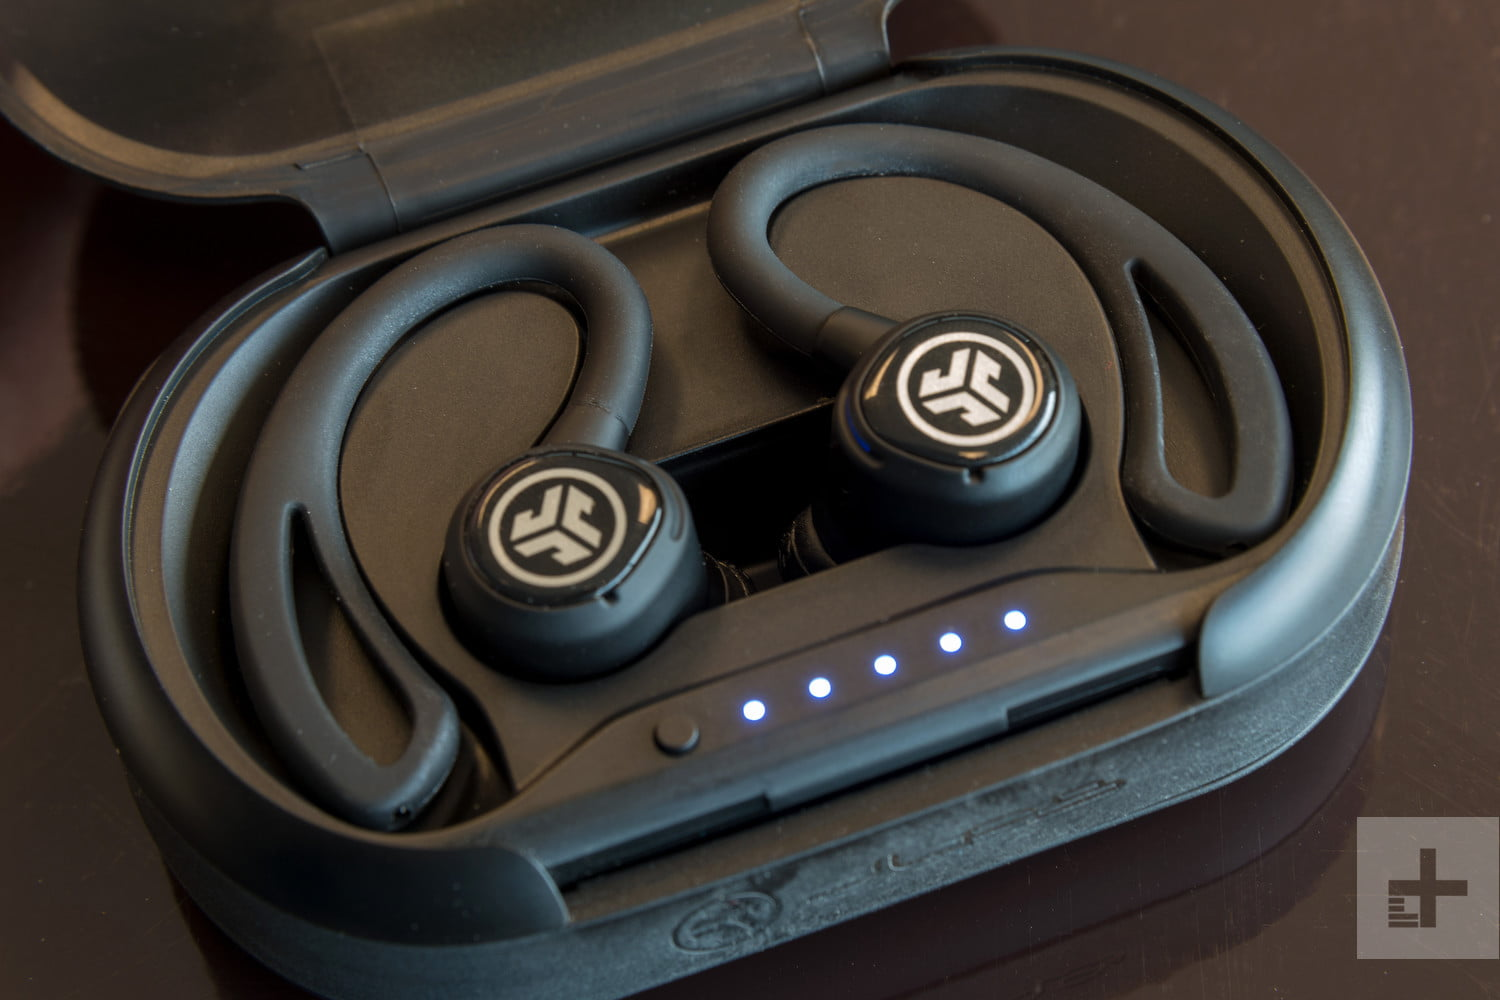 wireless earbuds hot holiday gifts